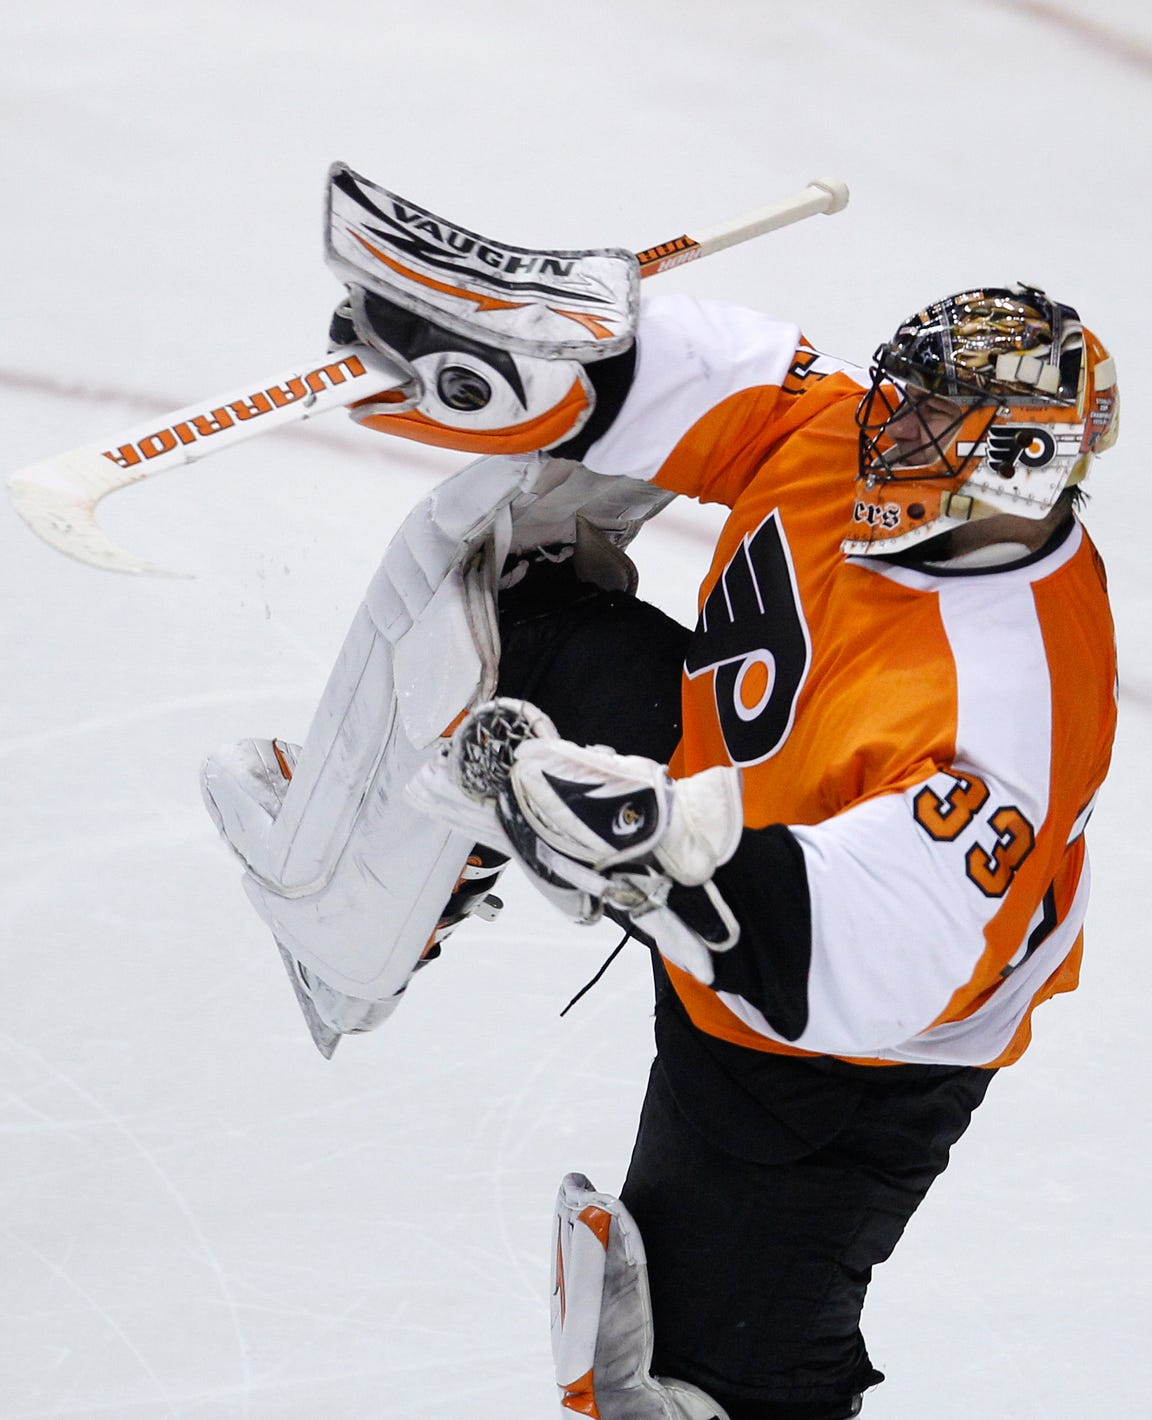 Brian Boucher's celebration was an ode to Henrik Lundqvist, and one of the most iconic images in Flyers franchise history.